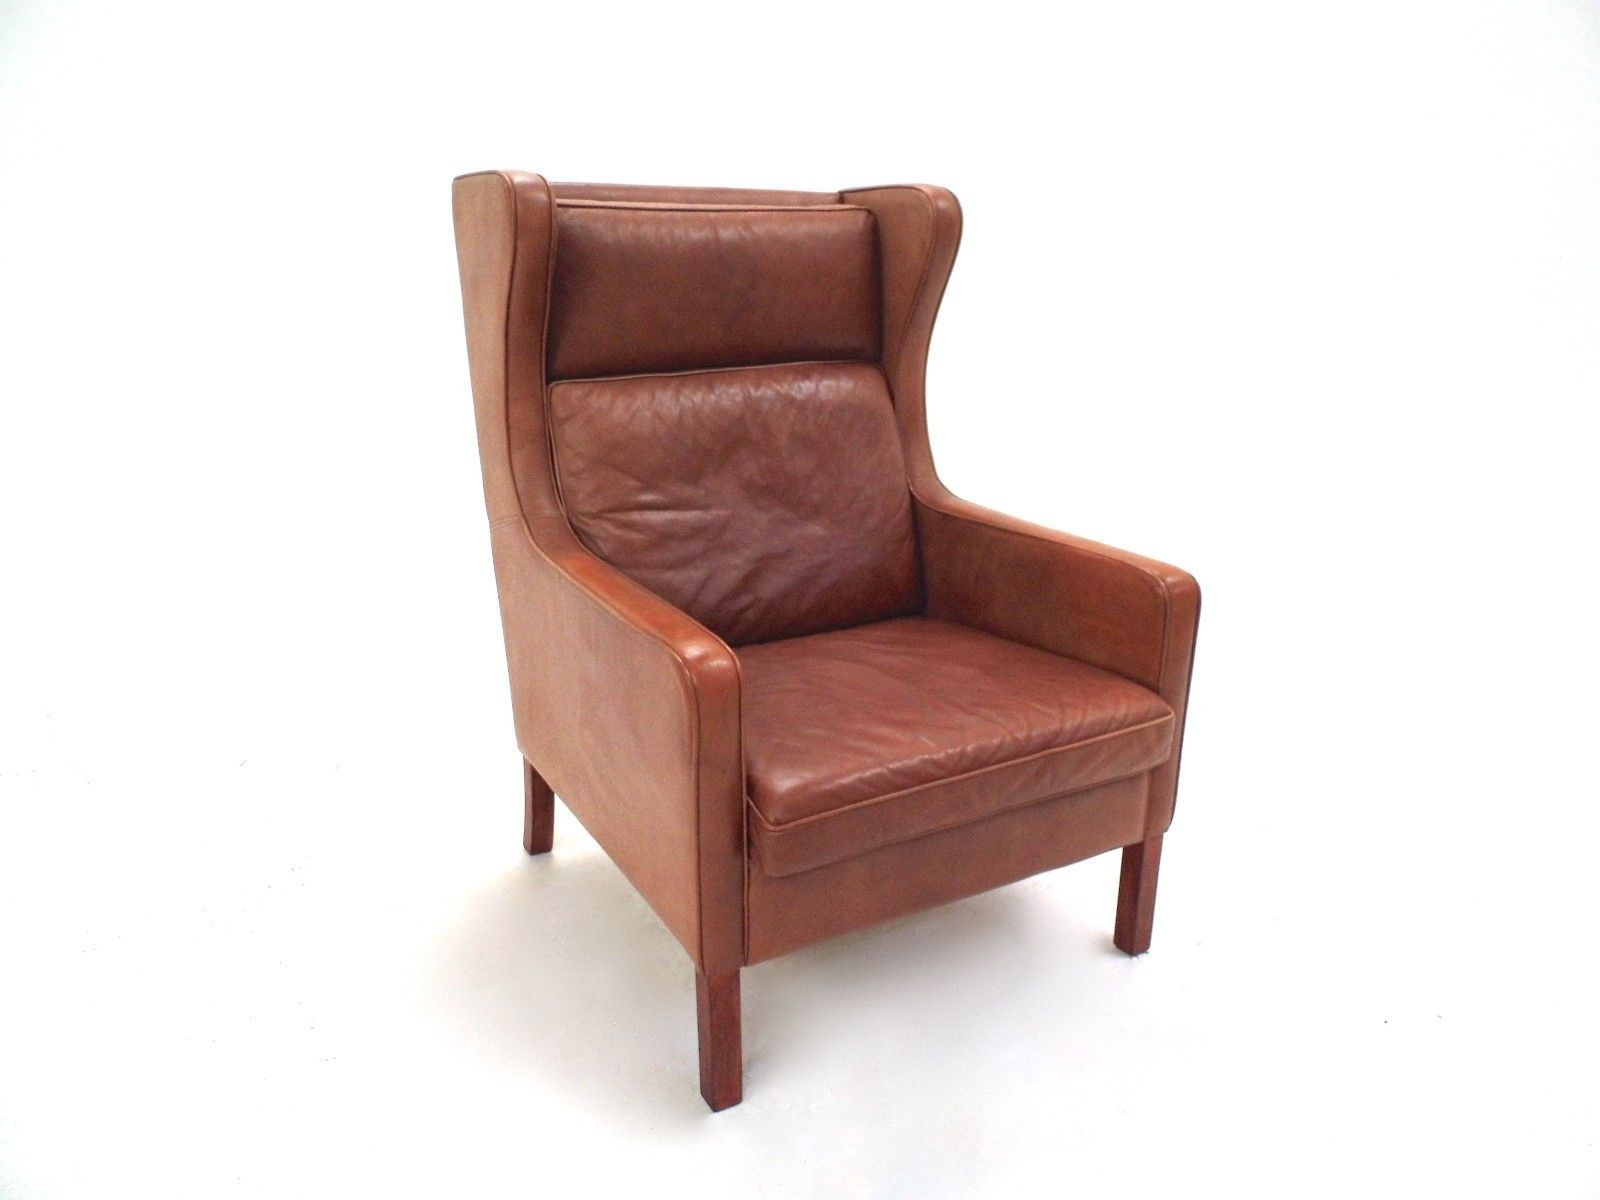 Danish Tan Leather Highback Armchair from Stouby 1960s for sale